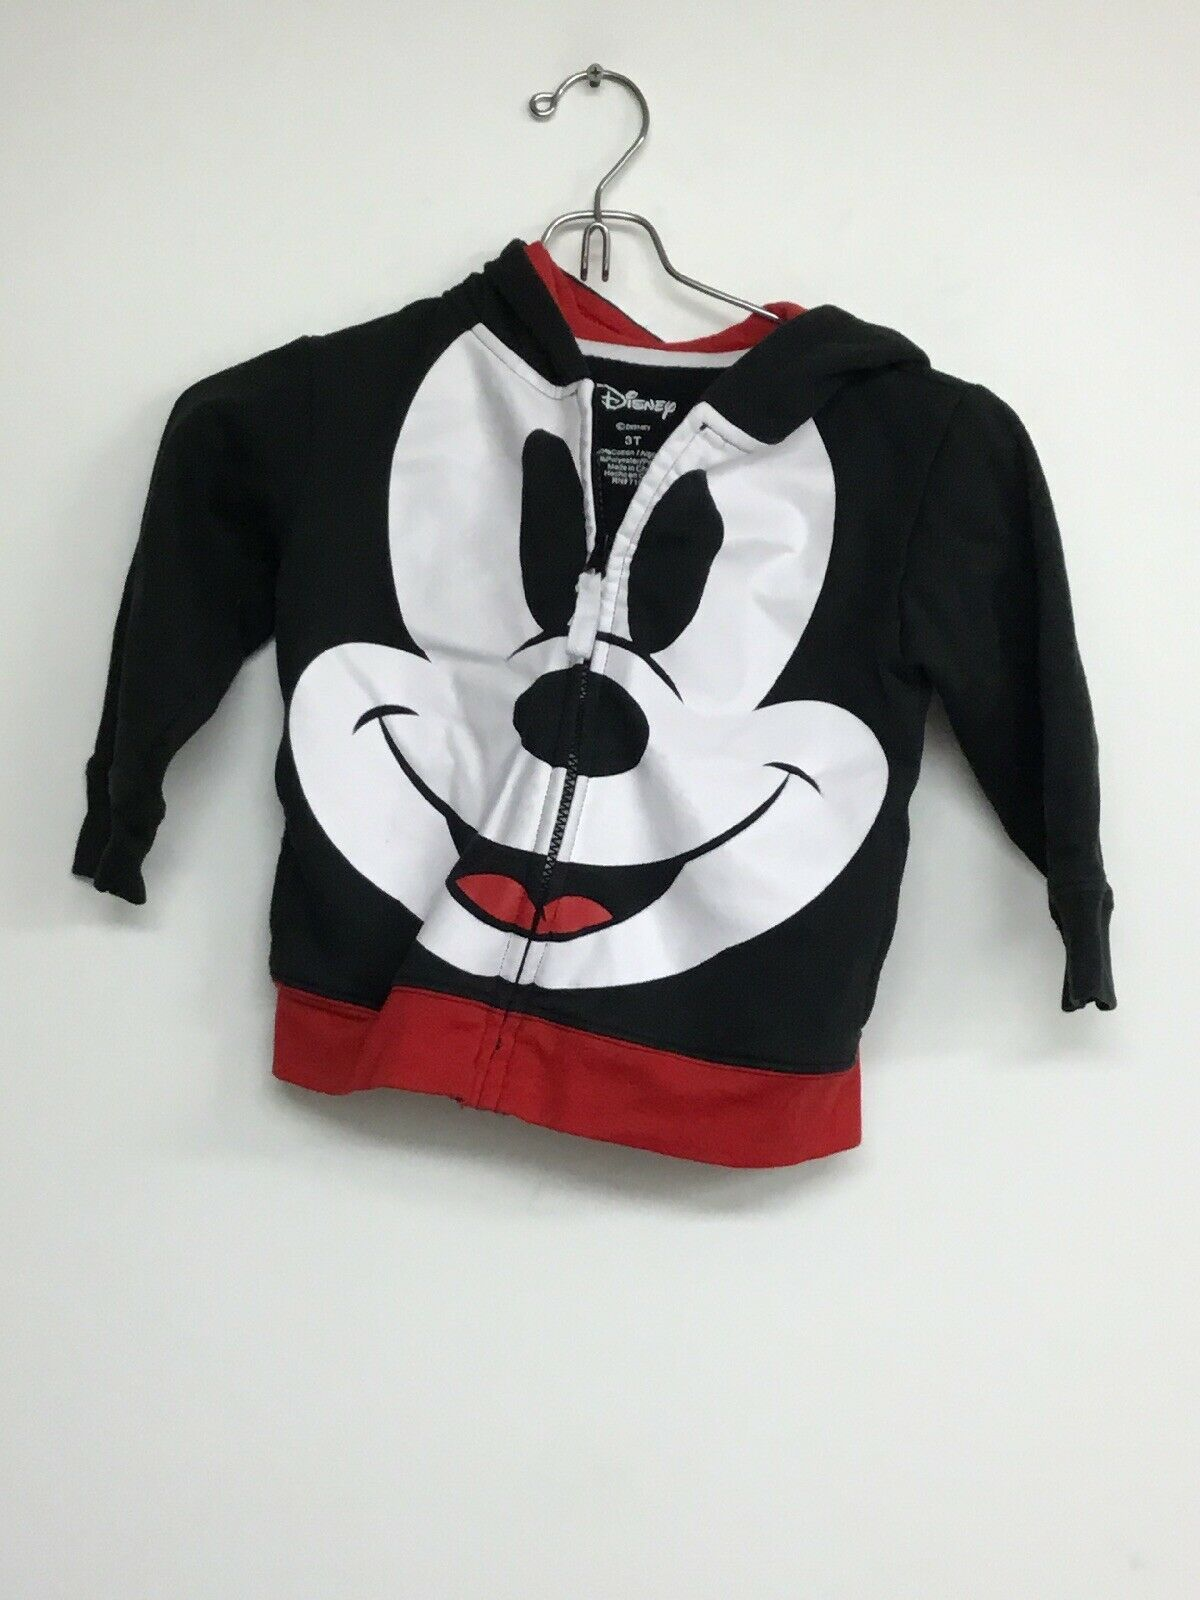 Primary image for Disney Mickey Mouse Full Zip Hoodie, With Mickey's Face On Front, 3T Black/Red